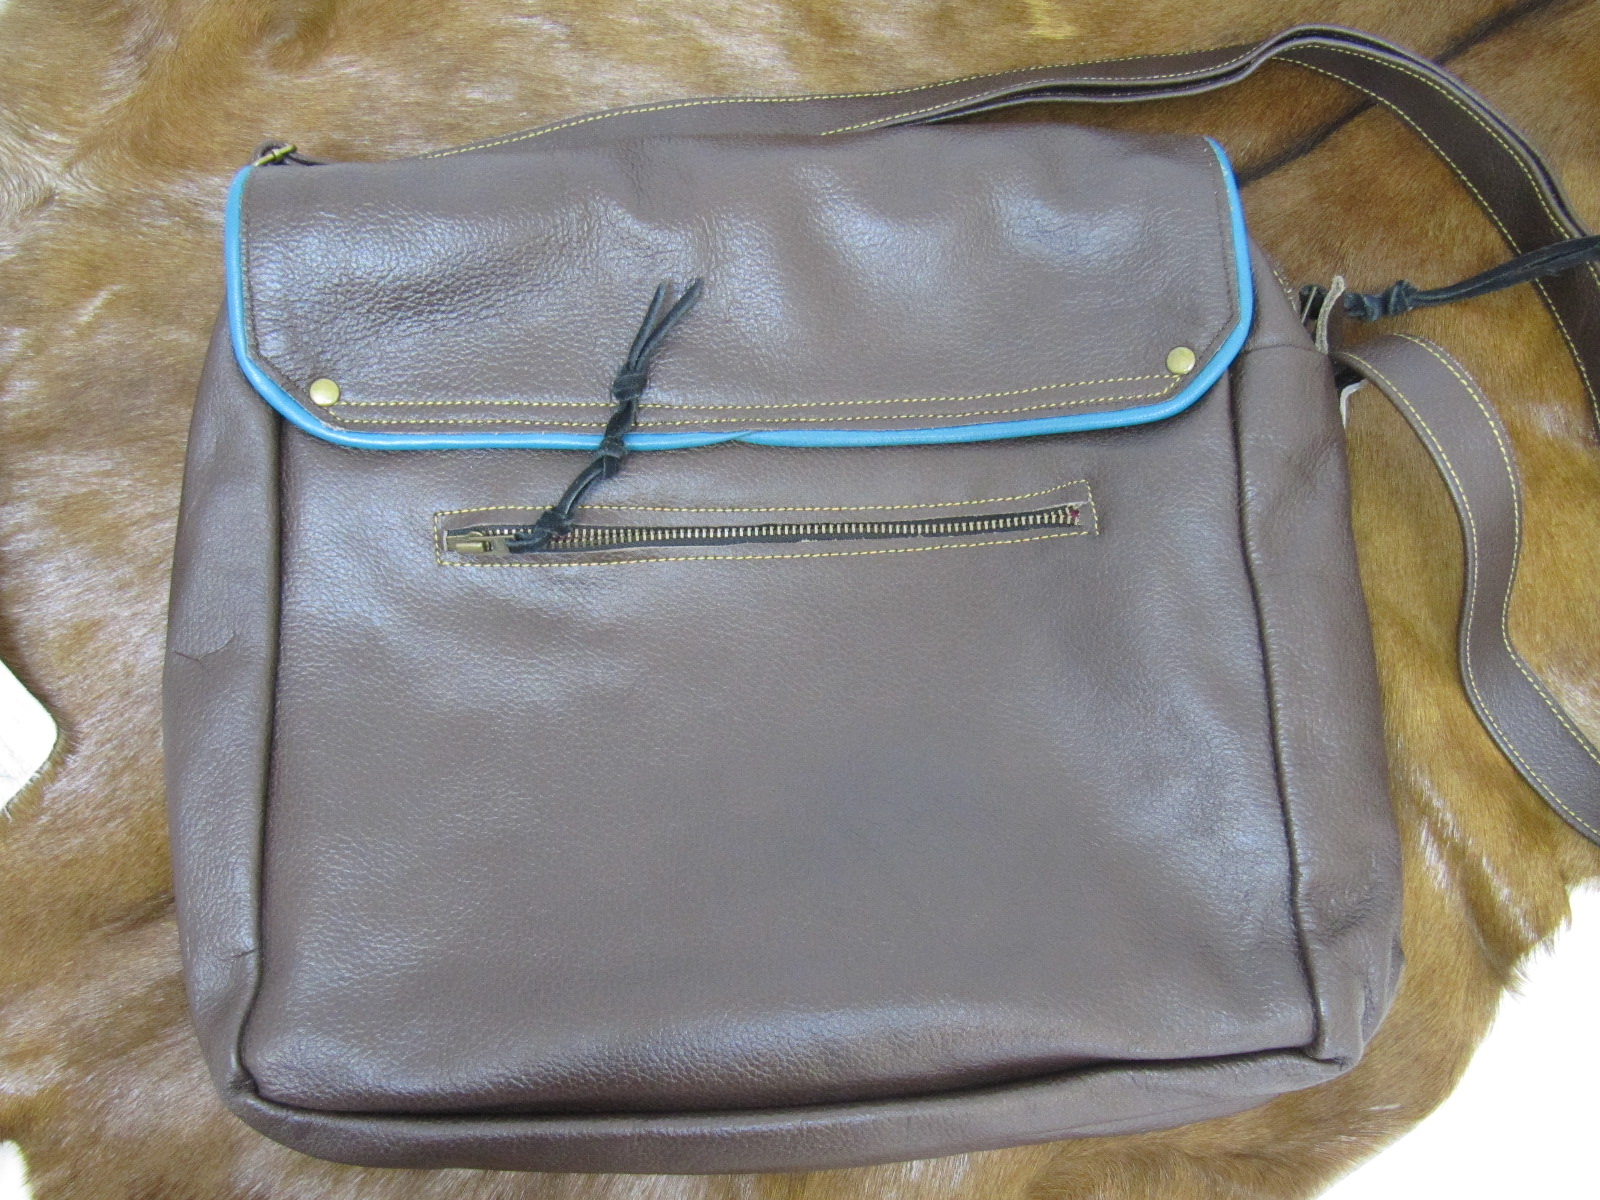 Large brown leather handbag with colourful piping